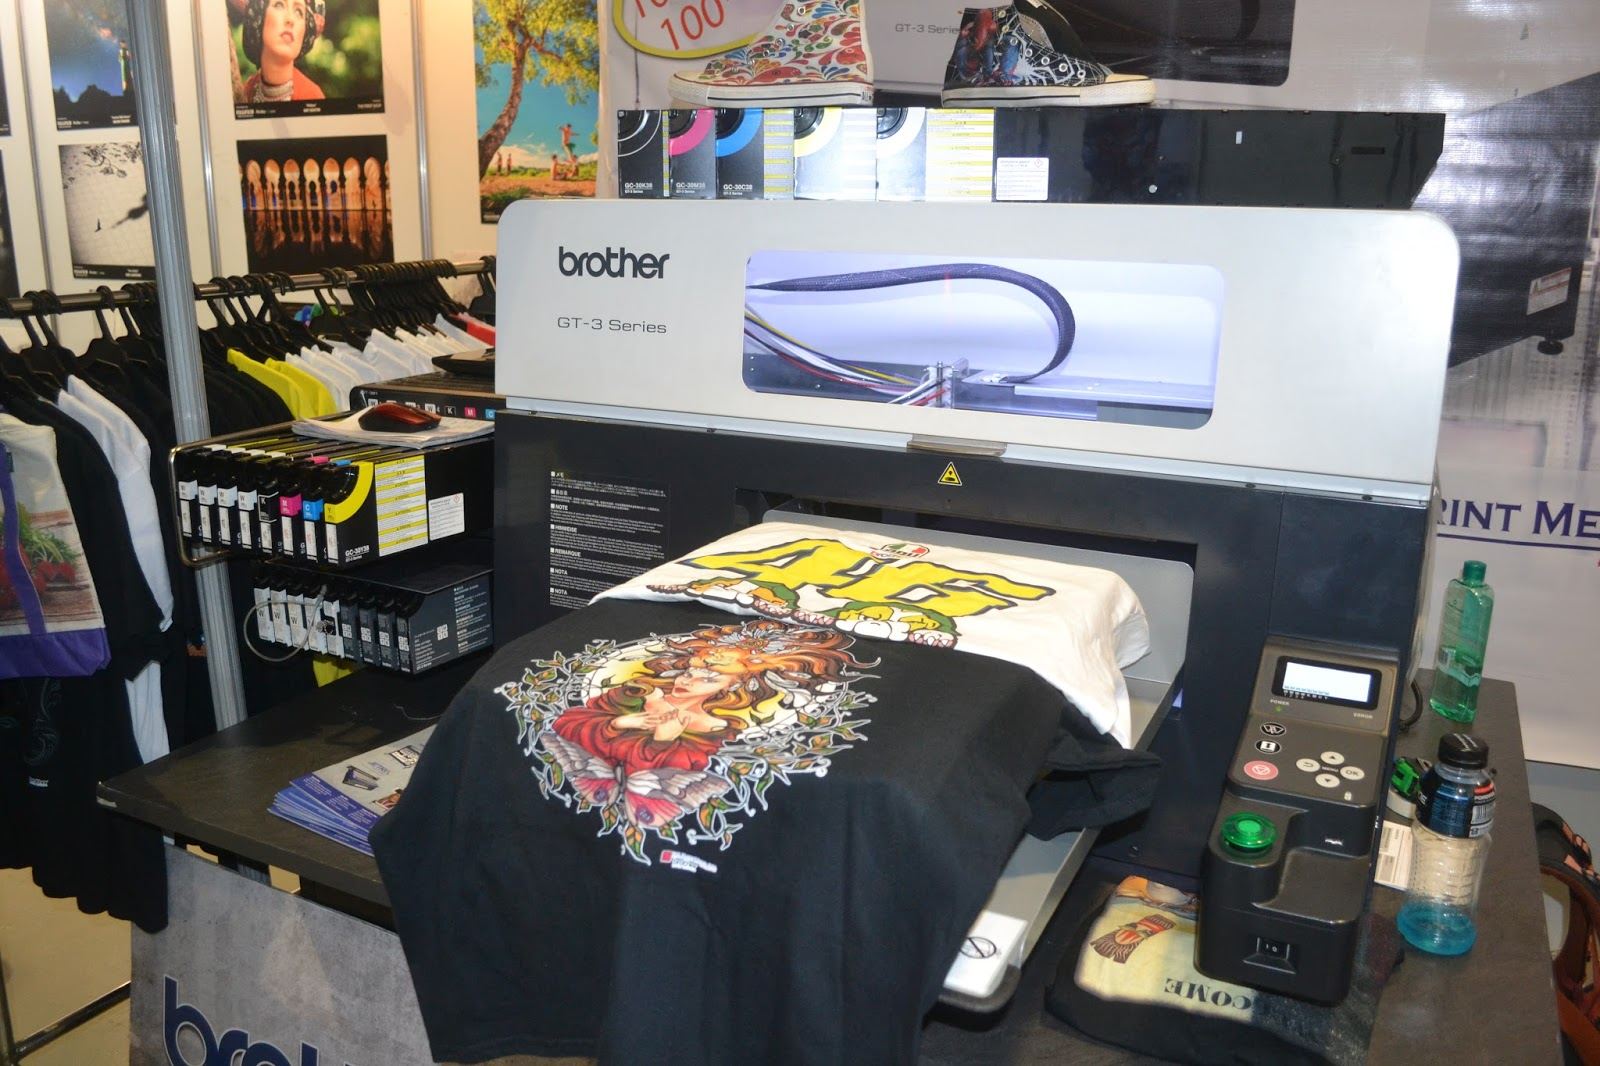 Printer Cost Php 13 To 14M Consumables Water Based Pigment CMYK 4 White Underbase For Dark Shirts Php9k Per Cartridge Of Printing A3